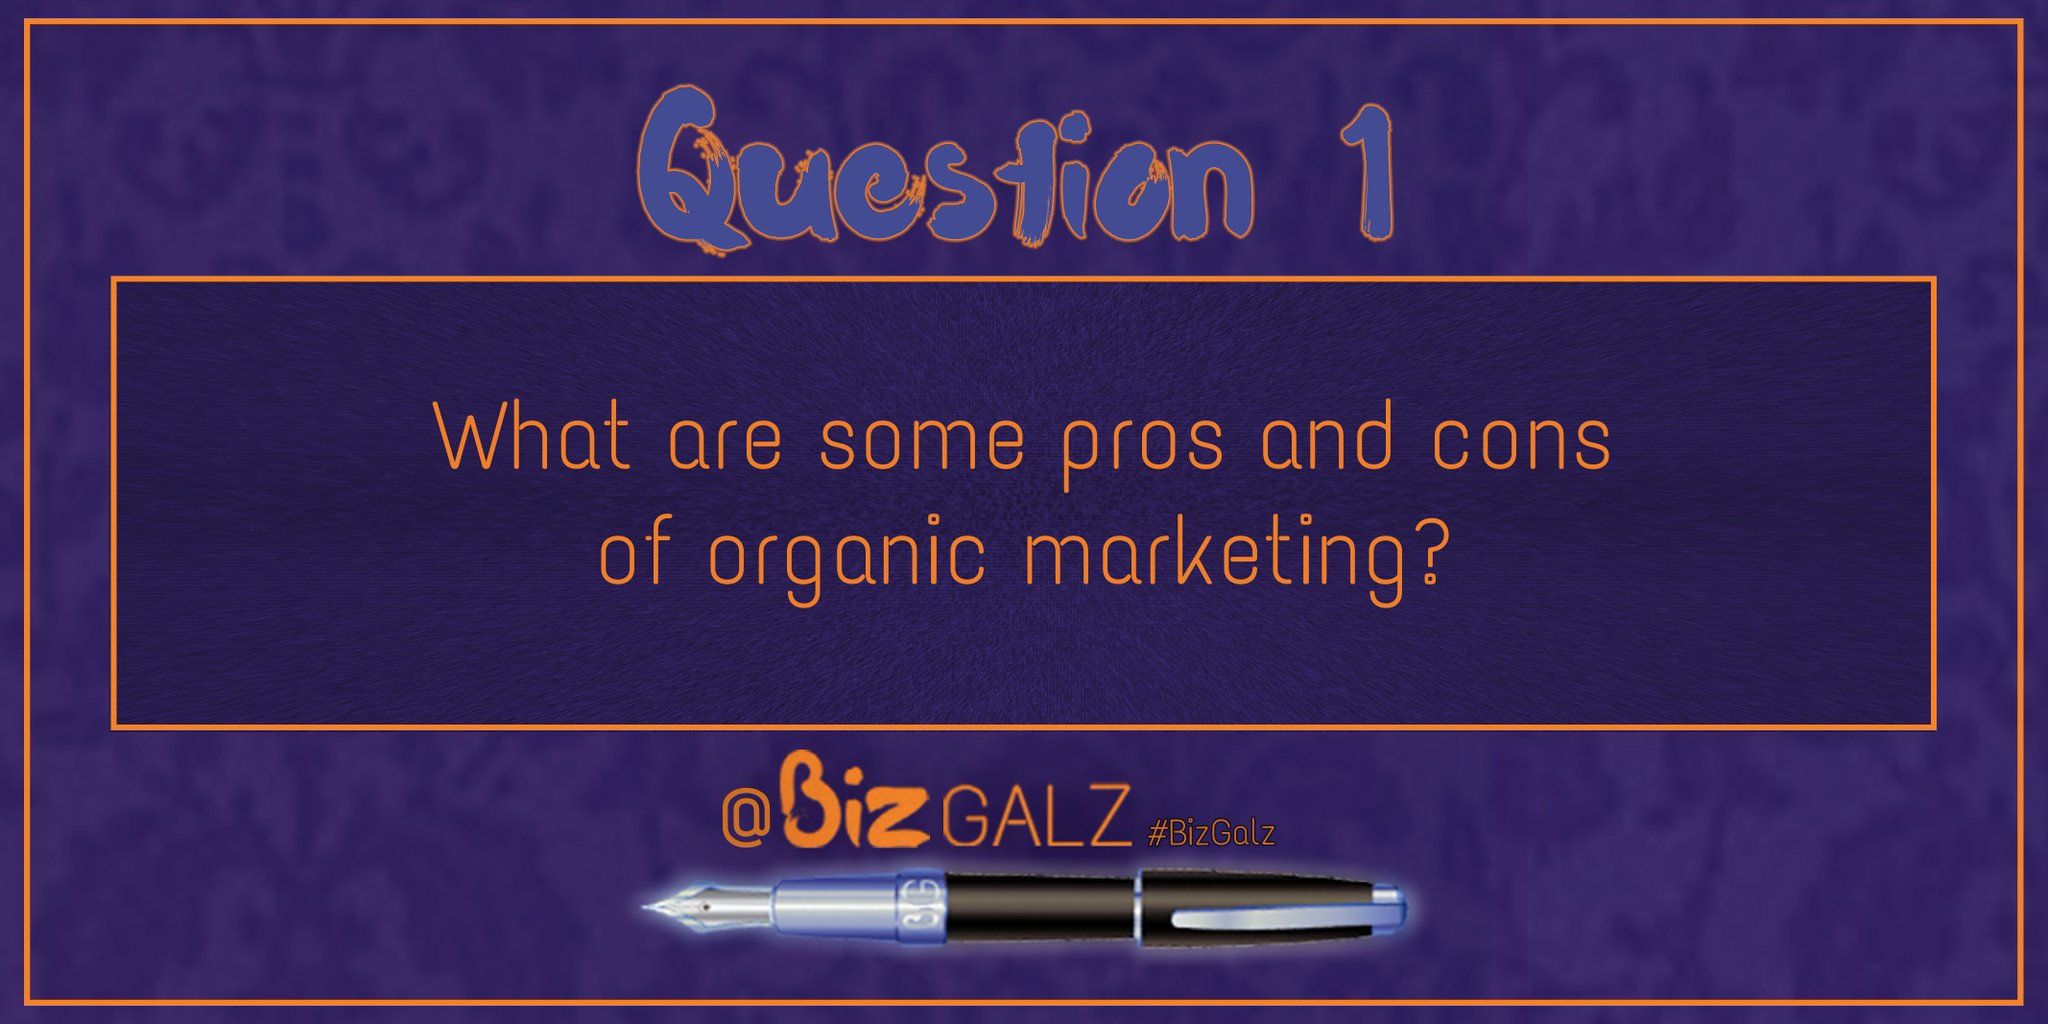 Q1 What are some pros and cons of #OrganicMarketing? #BizGalz https://t.co/Z2aqaSKKpi